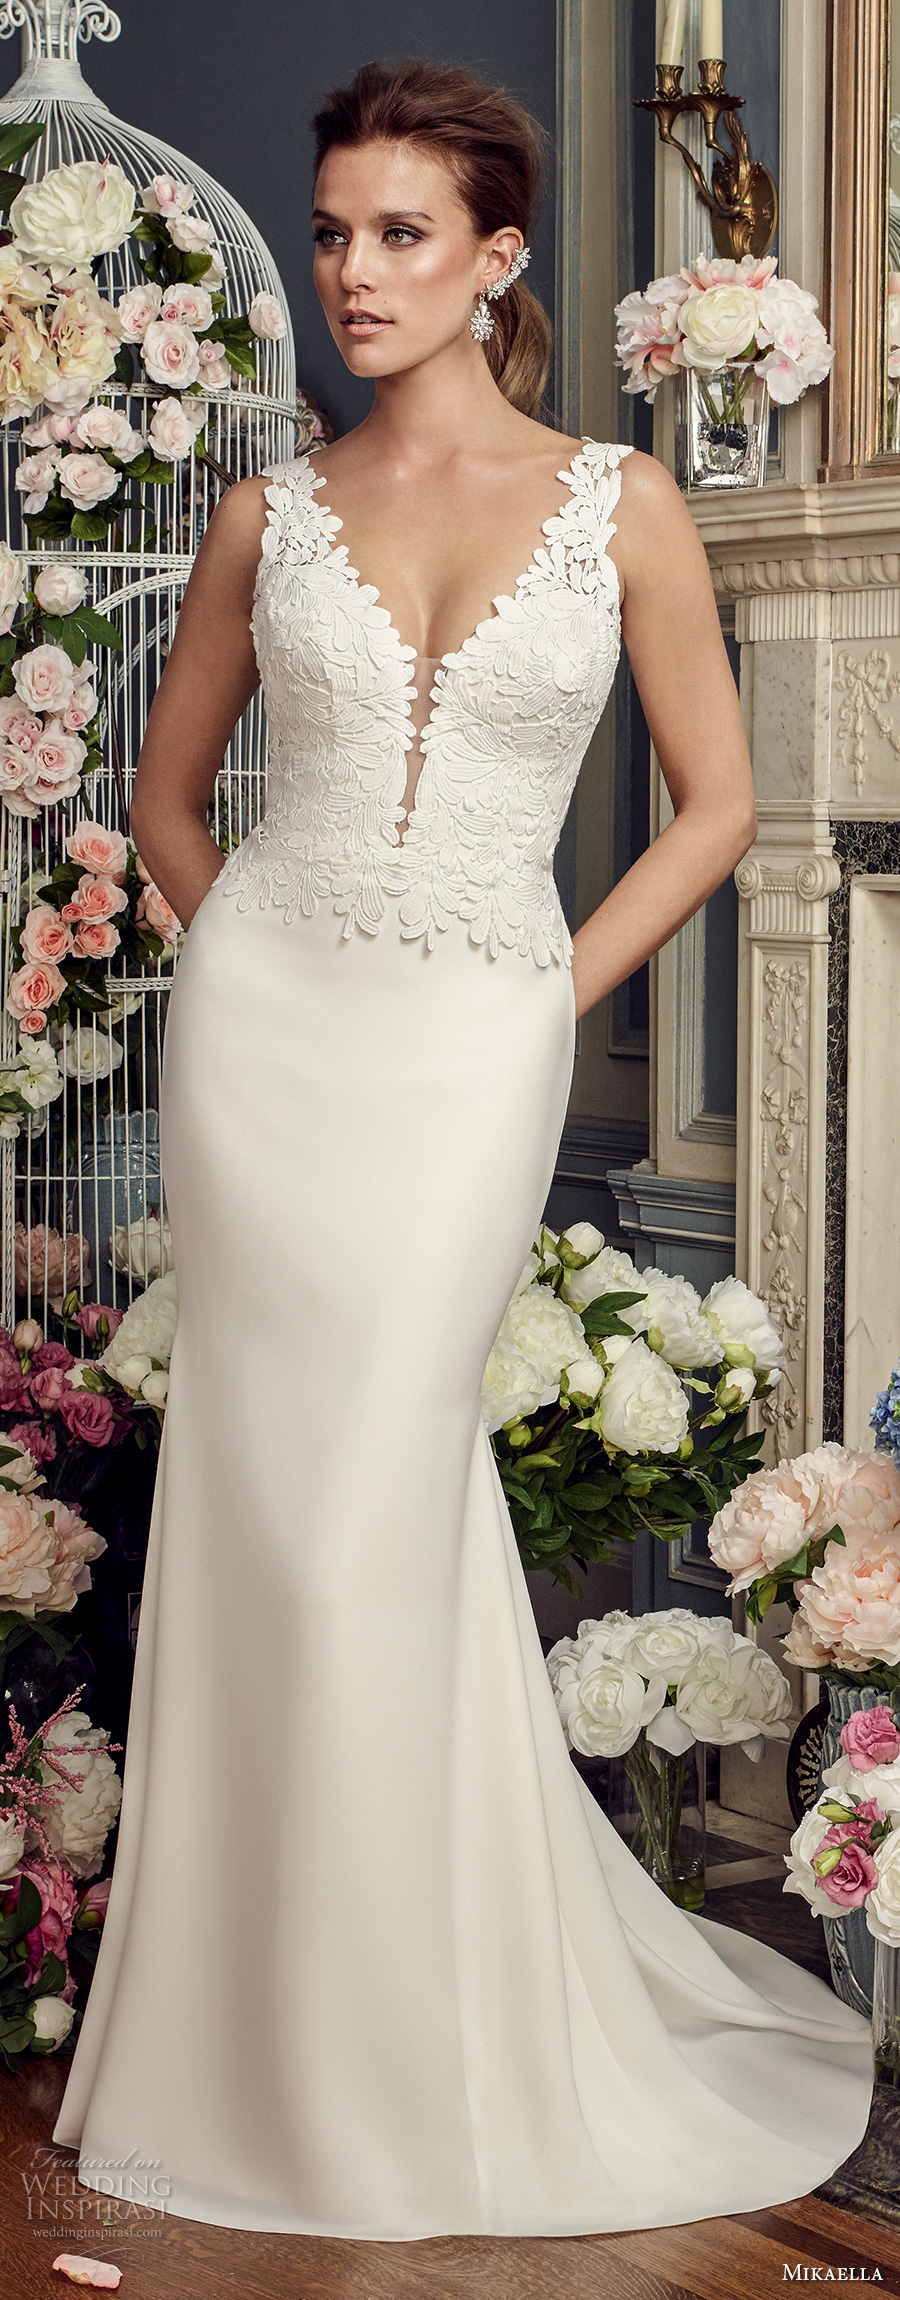 mikaella fall 2017 bridal sleeveless thick strap deep plunging v neck heavily embellished bodice satin skirt elegant sheath wedding dress open v back chapel train (2160) mv